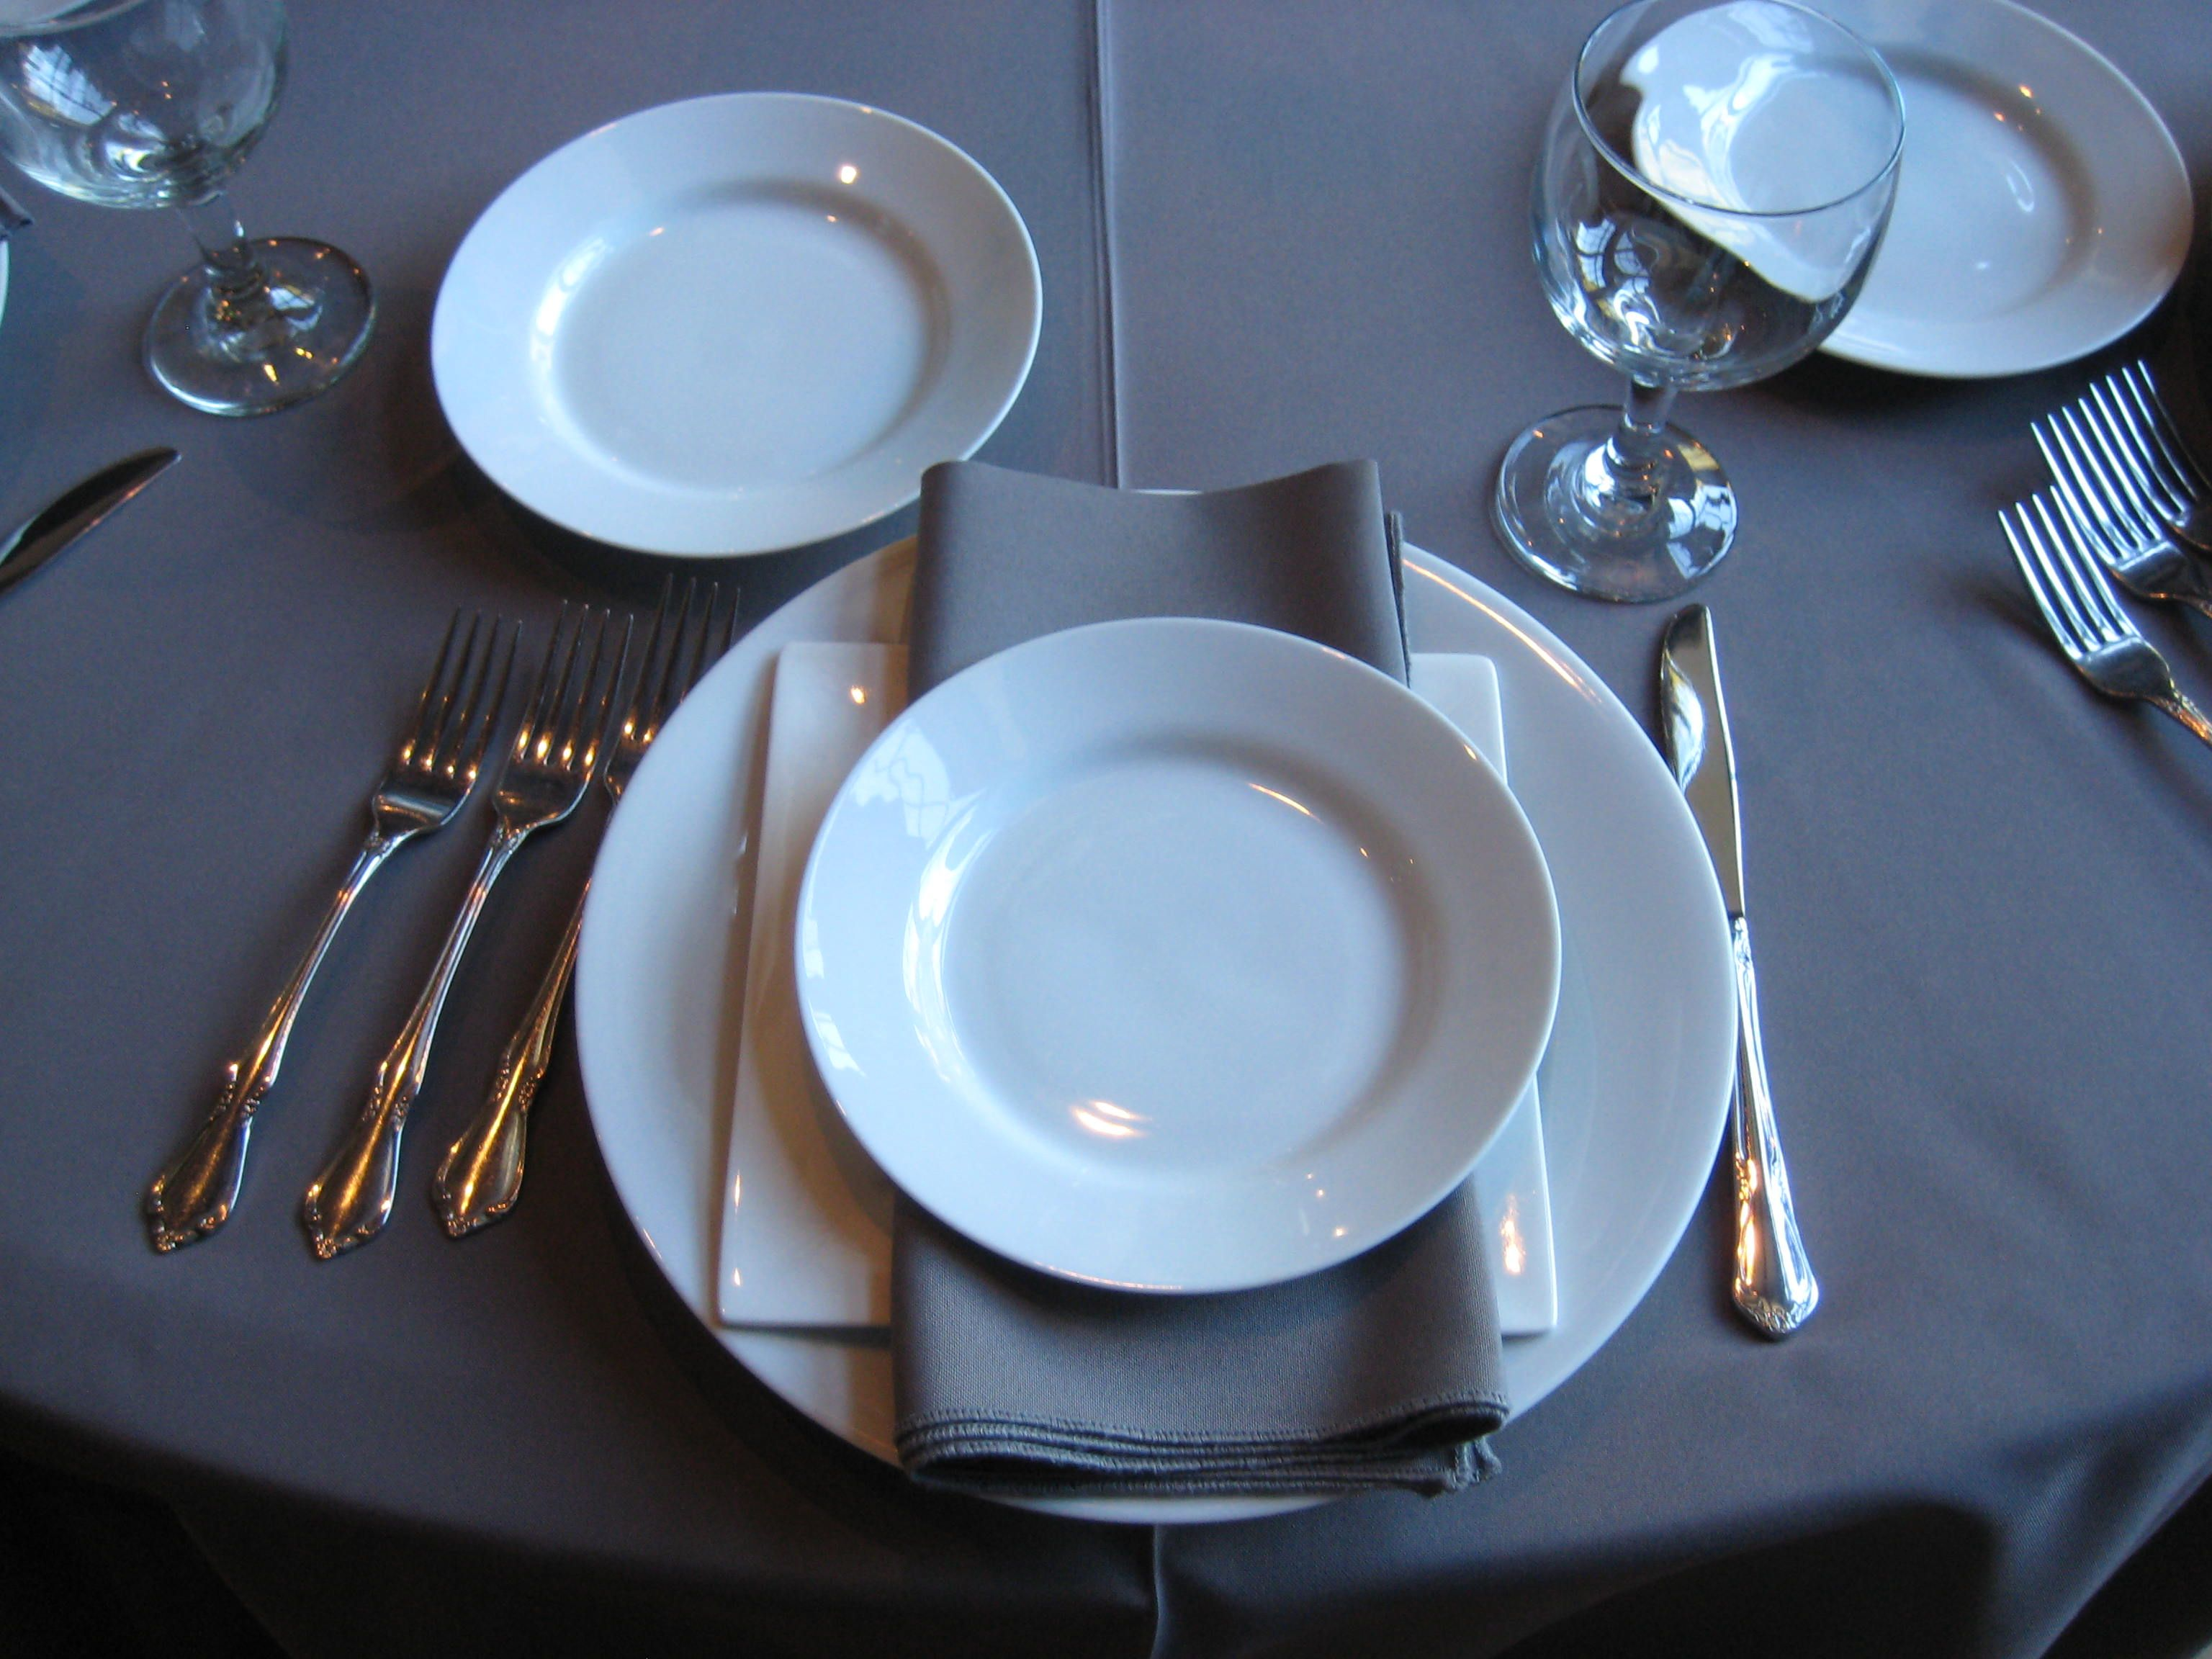 Family Style Place Setting For Three Course Meal Pasta Salad Main